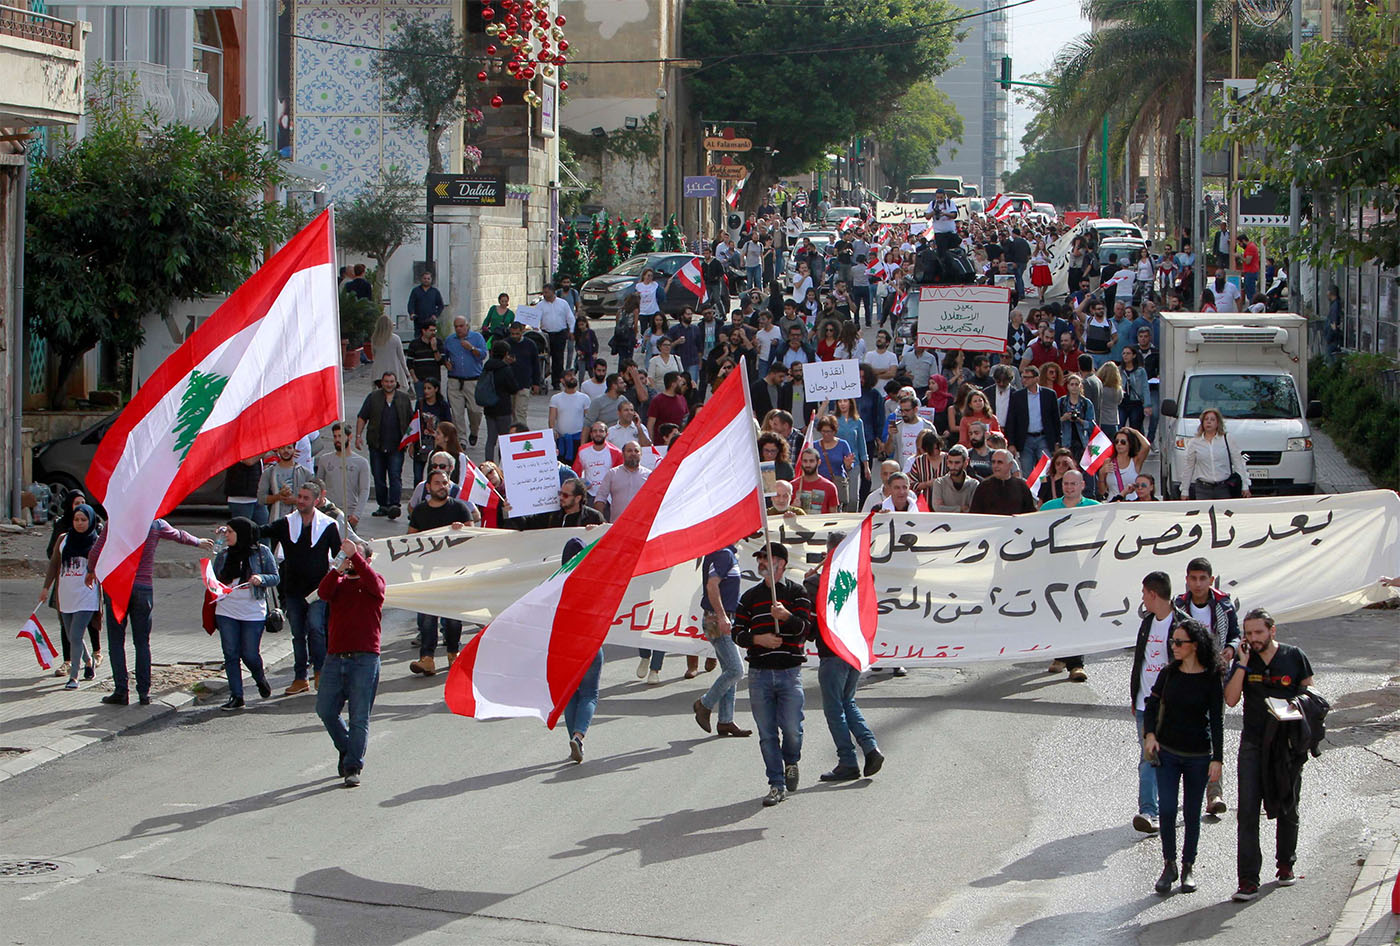 Protesters hold banners and Lebanese flags in Beirut